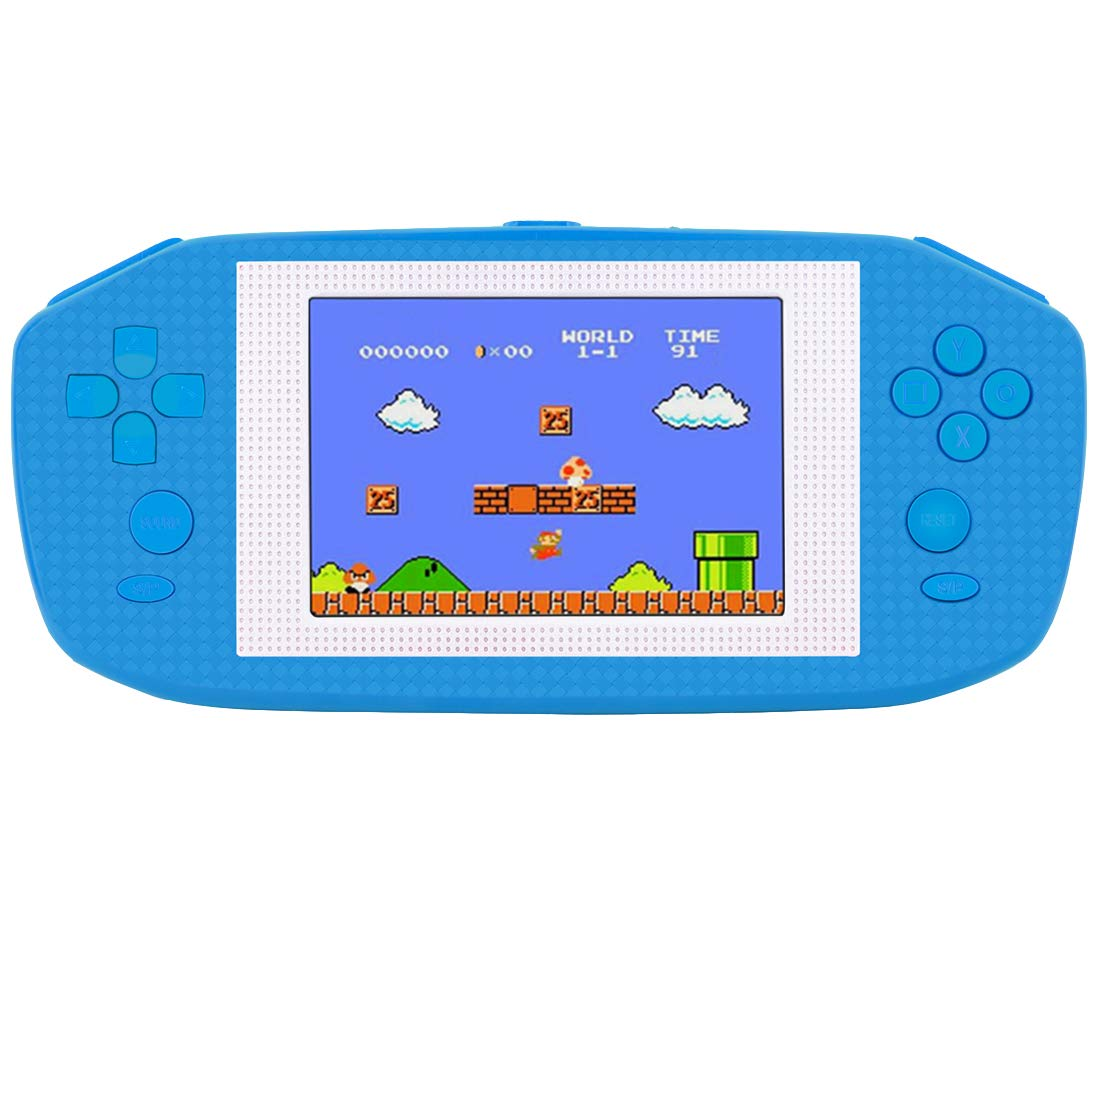 ZHISHAN Handheld Game Console Classic Retro Video Gaming Player Portable Arcade Electronic Games